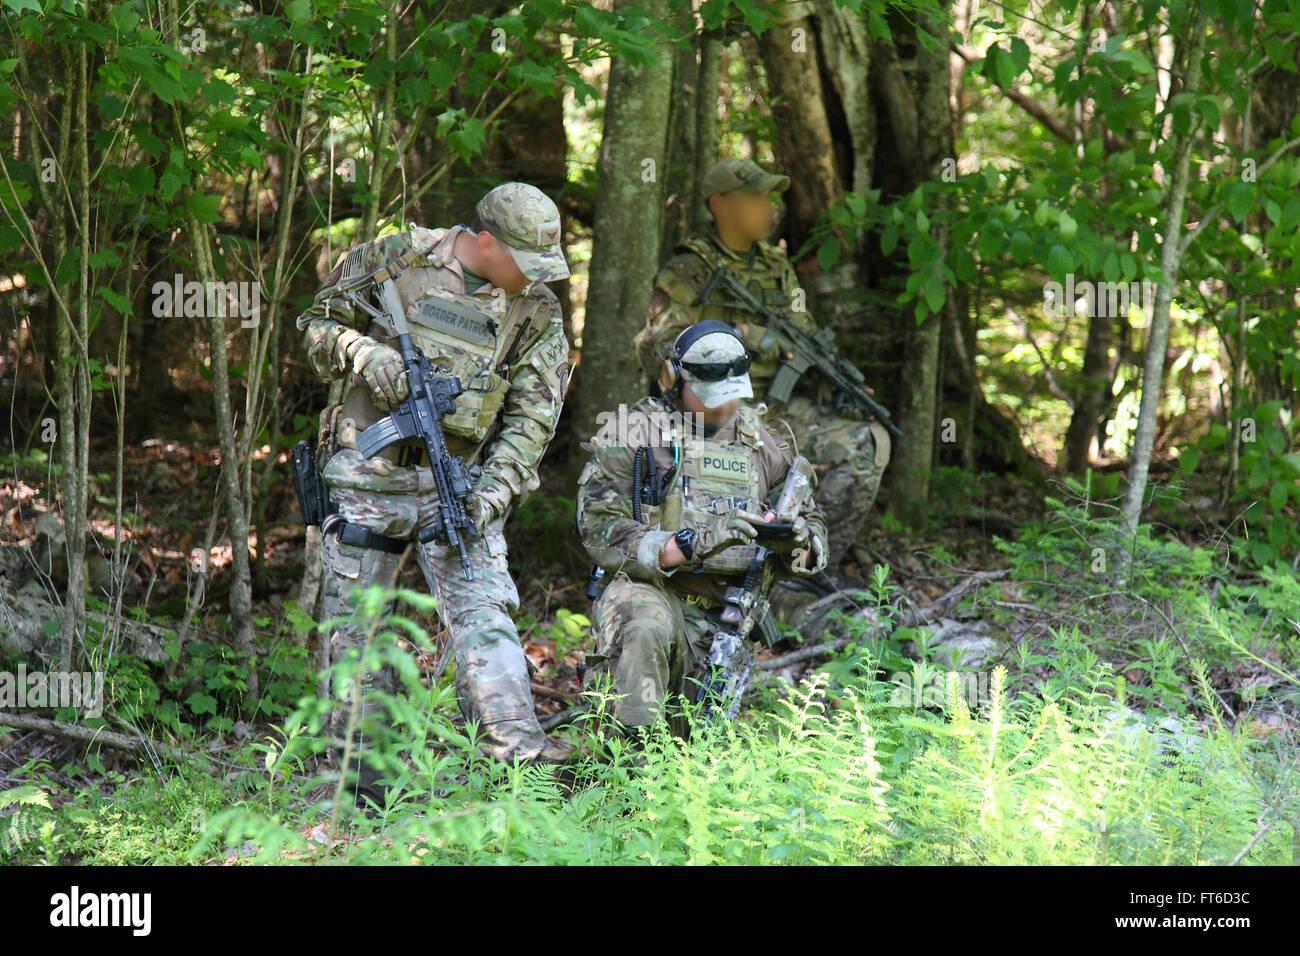 BORTAC team members search for clues in the Richard Matt and David Sweat manhunt on June 14. Photographer: Kristoffer - Stock Image